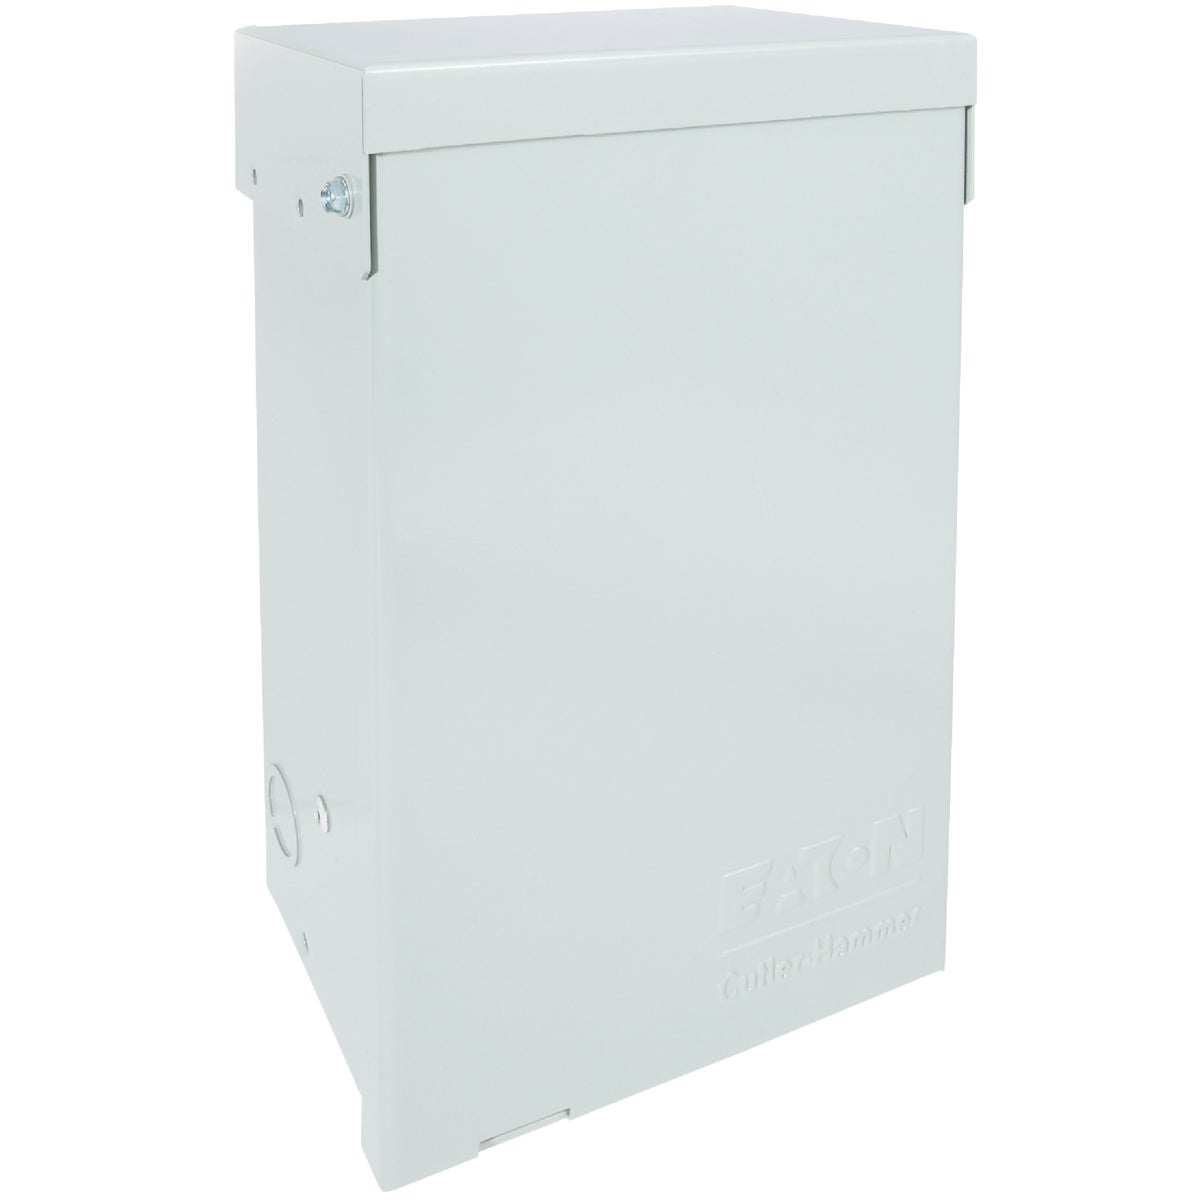 60A AC NONFUS DISCONNECT - DPU222RGF20 by Eaton Corporation